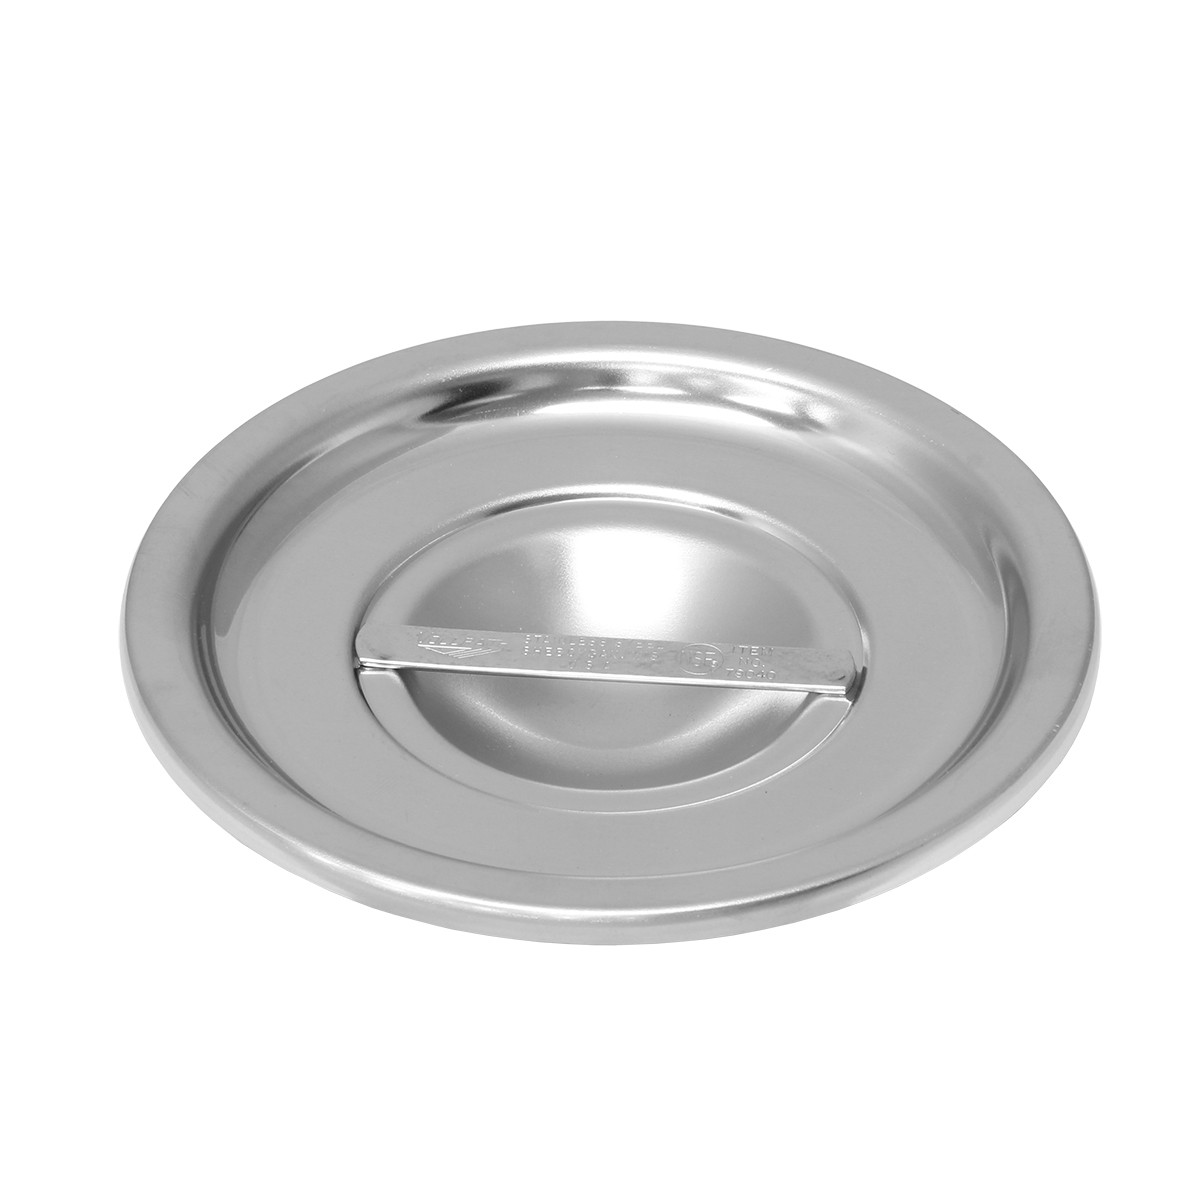 Stainless Steel Covers - 3.25 Qts